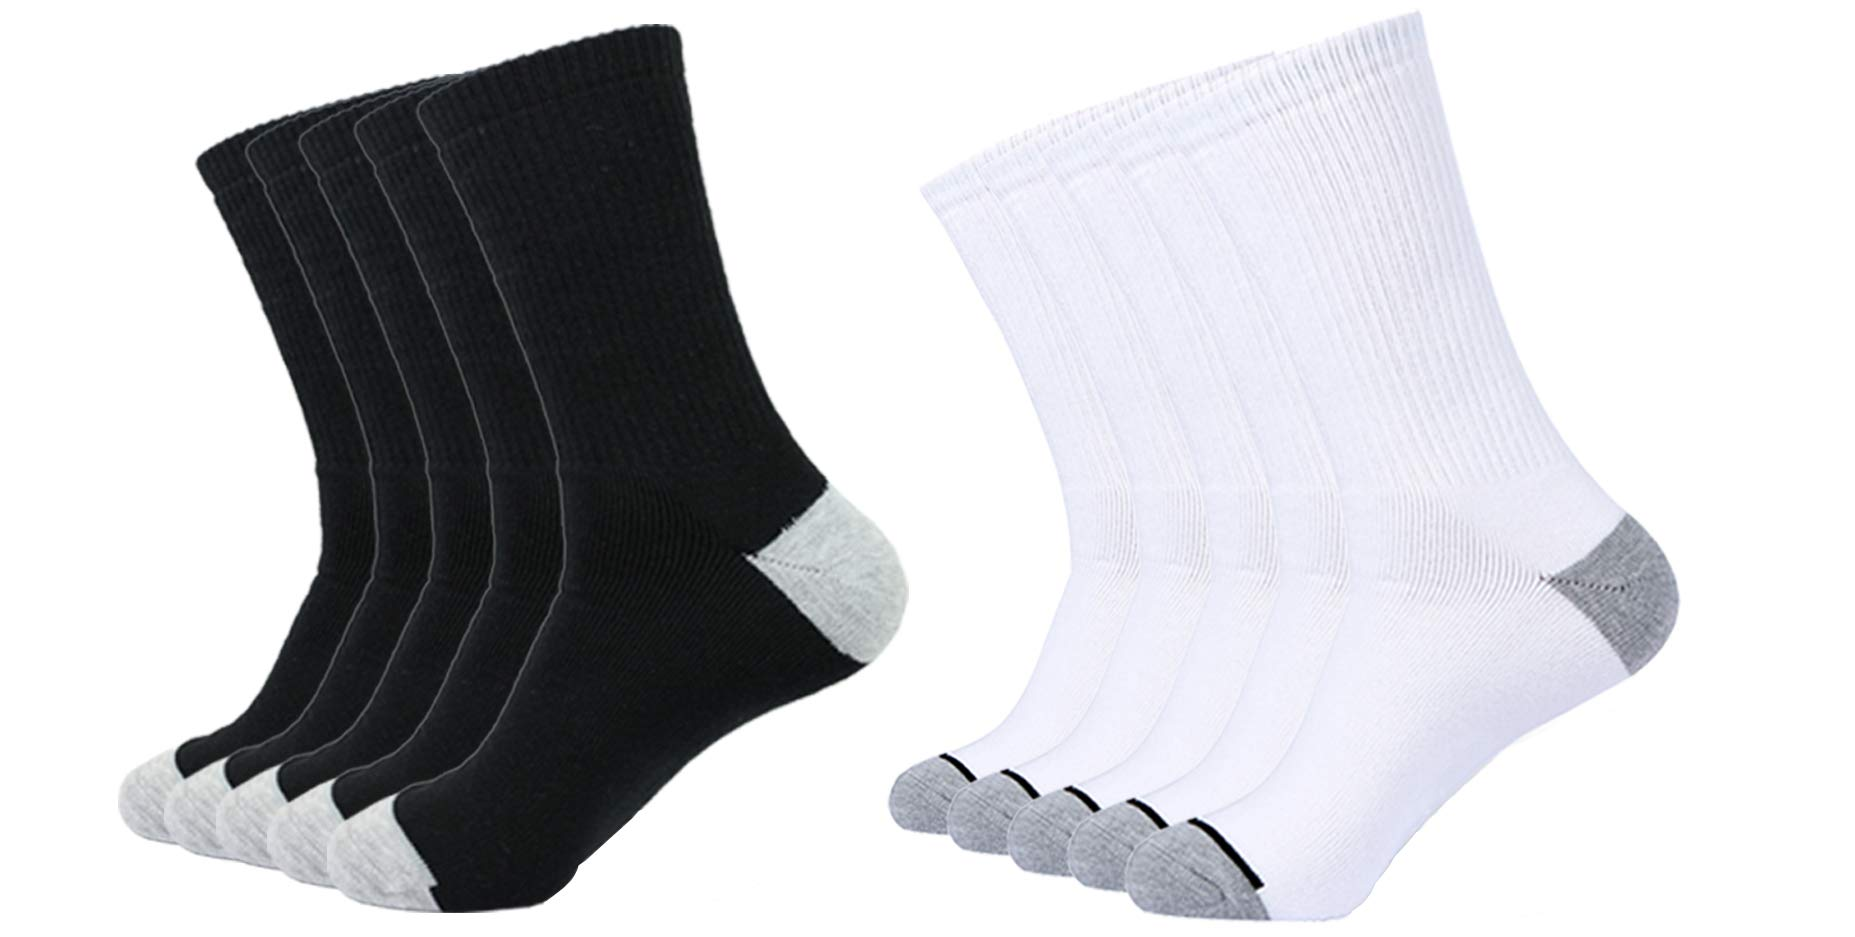 Enerwear 10P Pack Men's Cotton Moisture Wicking Extra Heavy Cushion Crew Socks (10-13/shoe size 6-12, Mix Color) by Enerwear